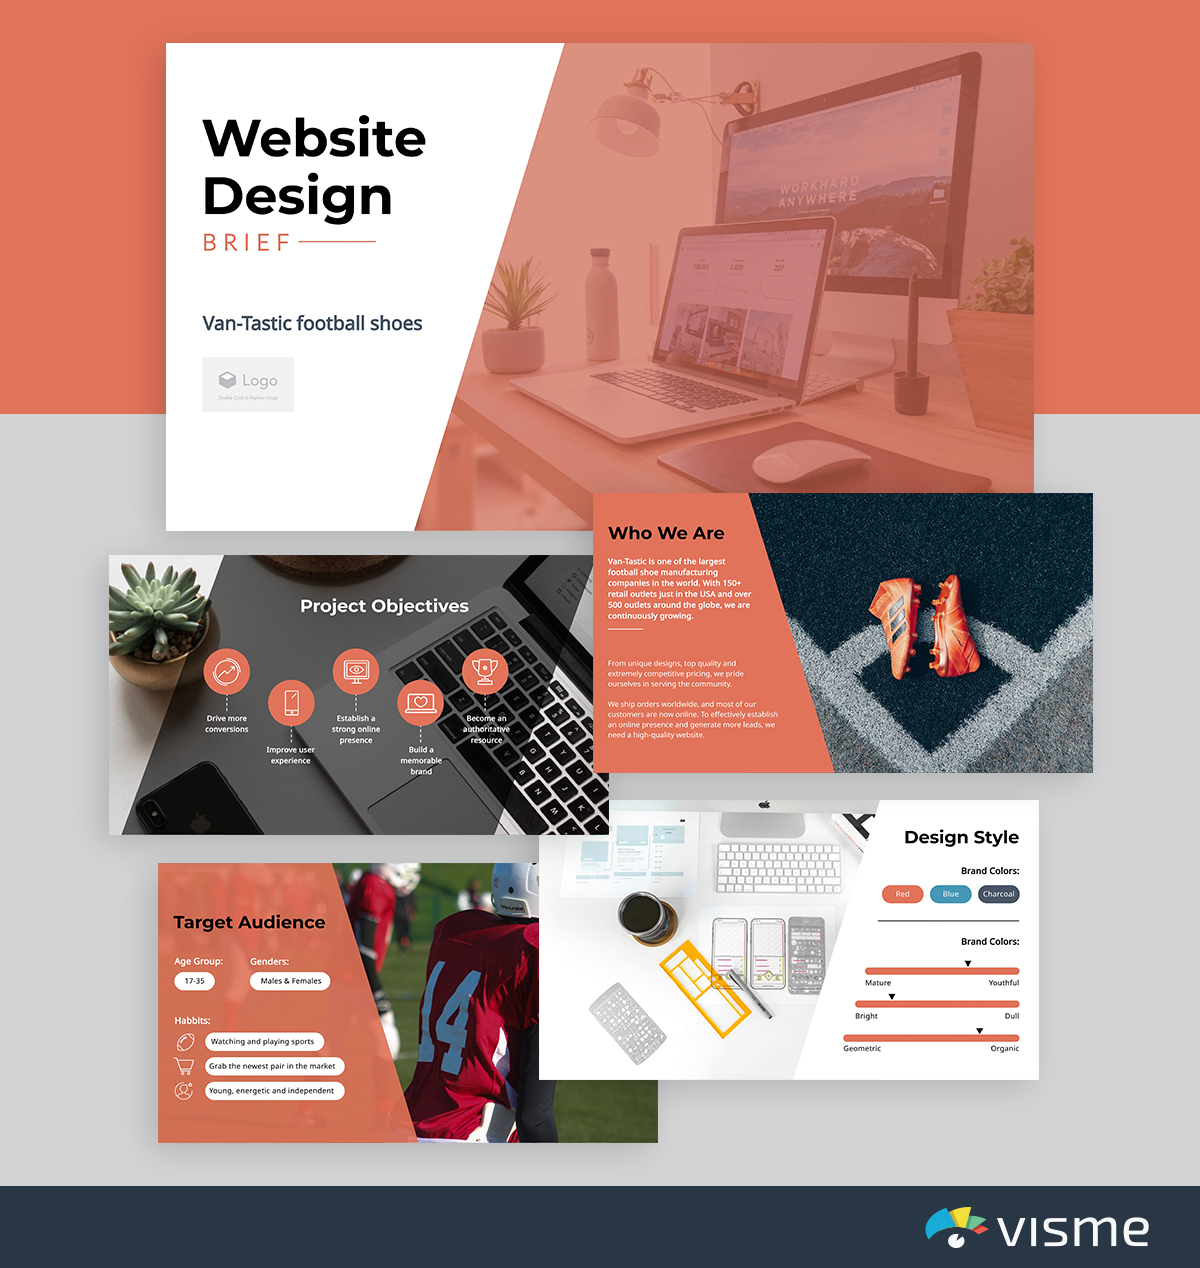 design brief - presentation design brief template